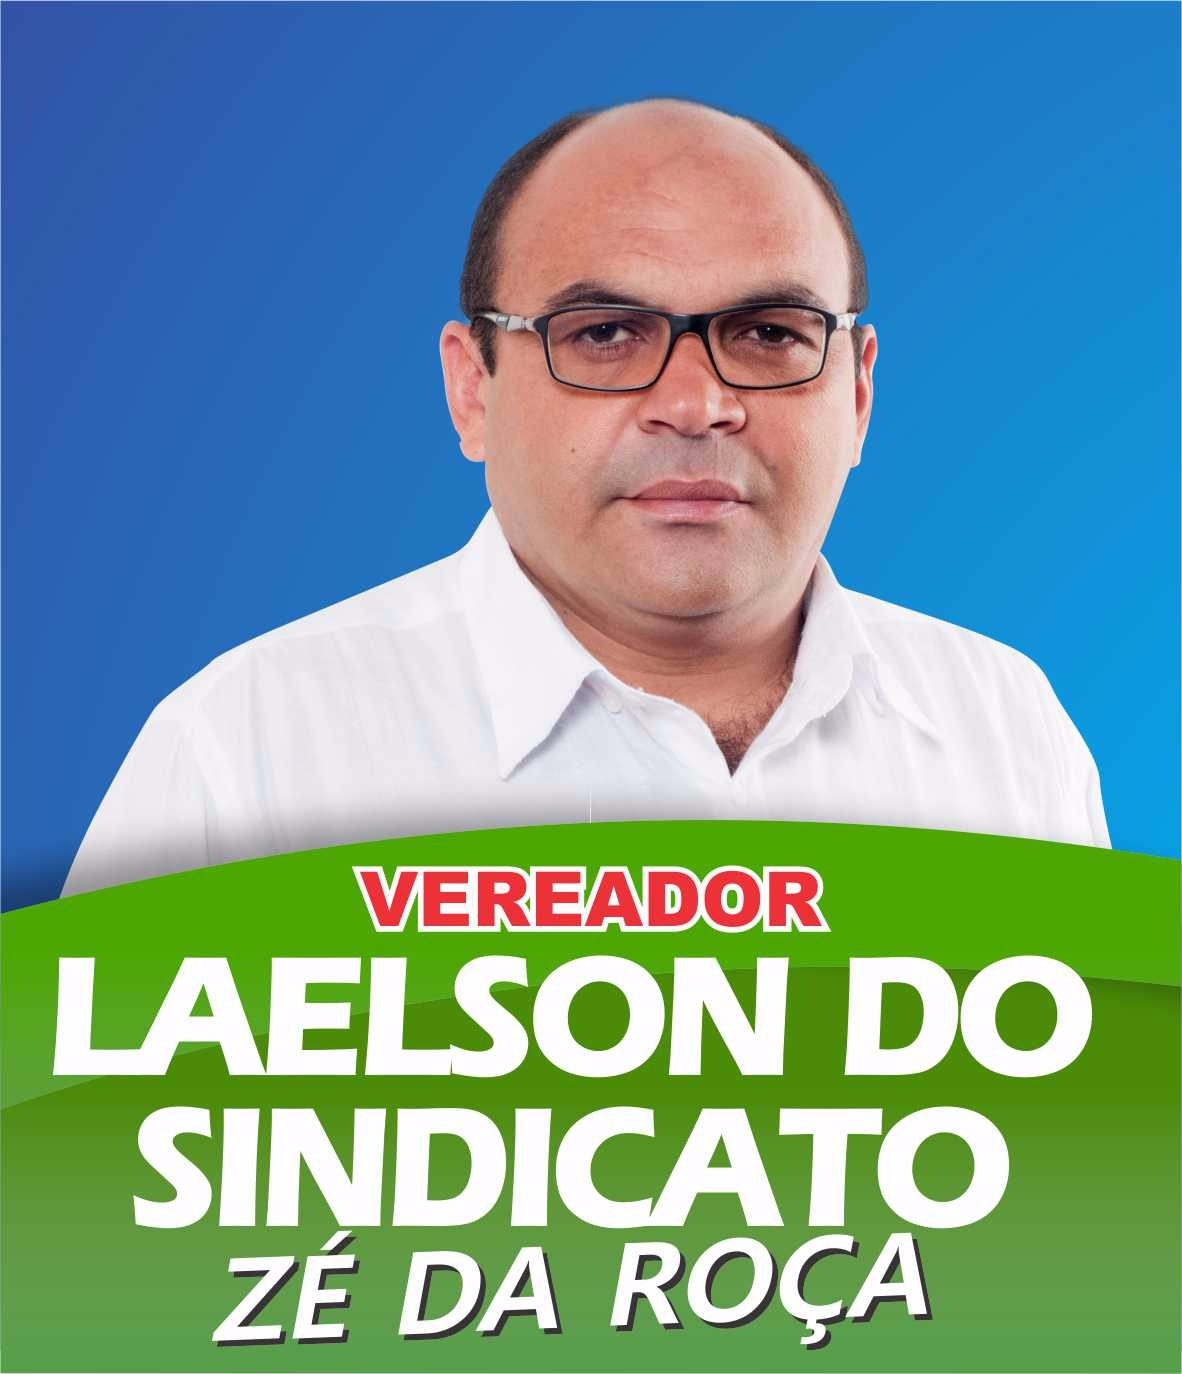 Laelson do Sindicato